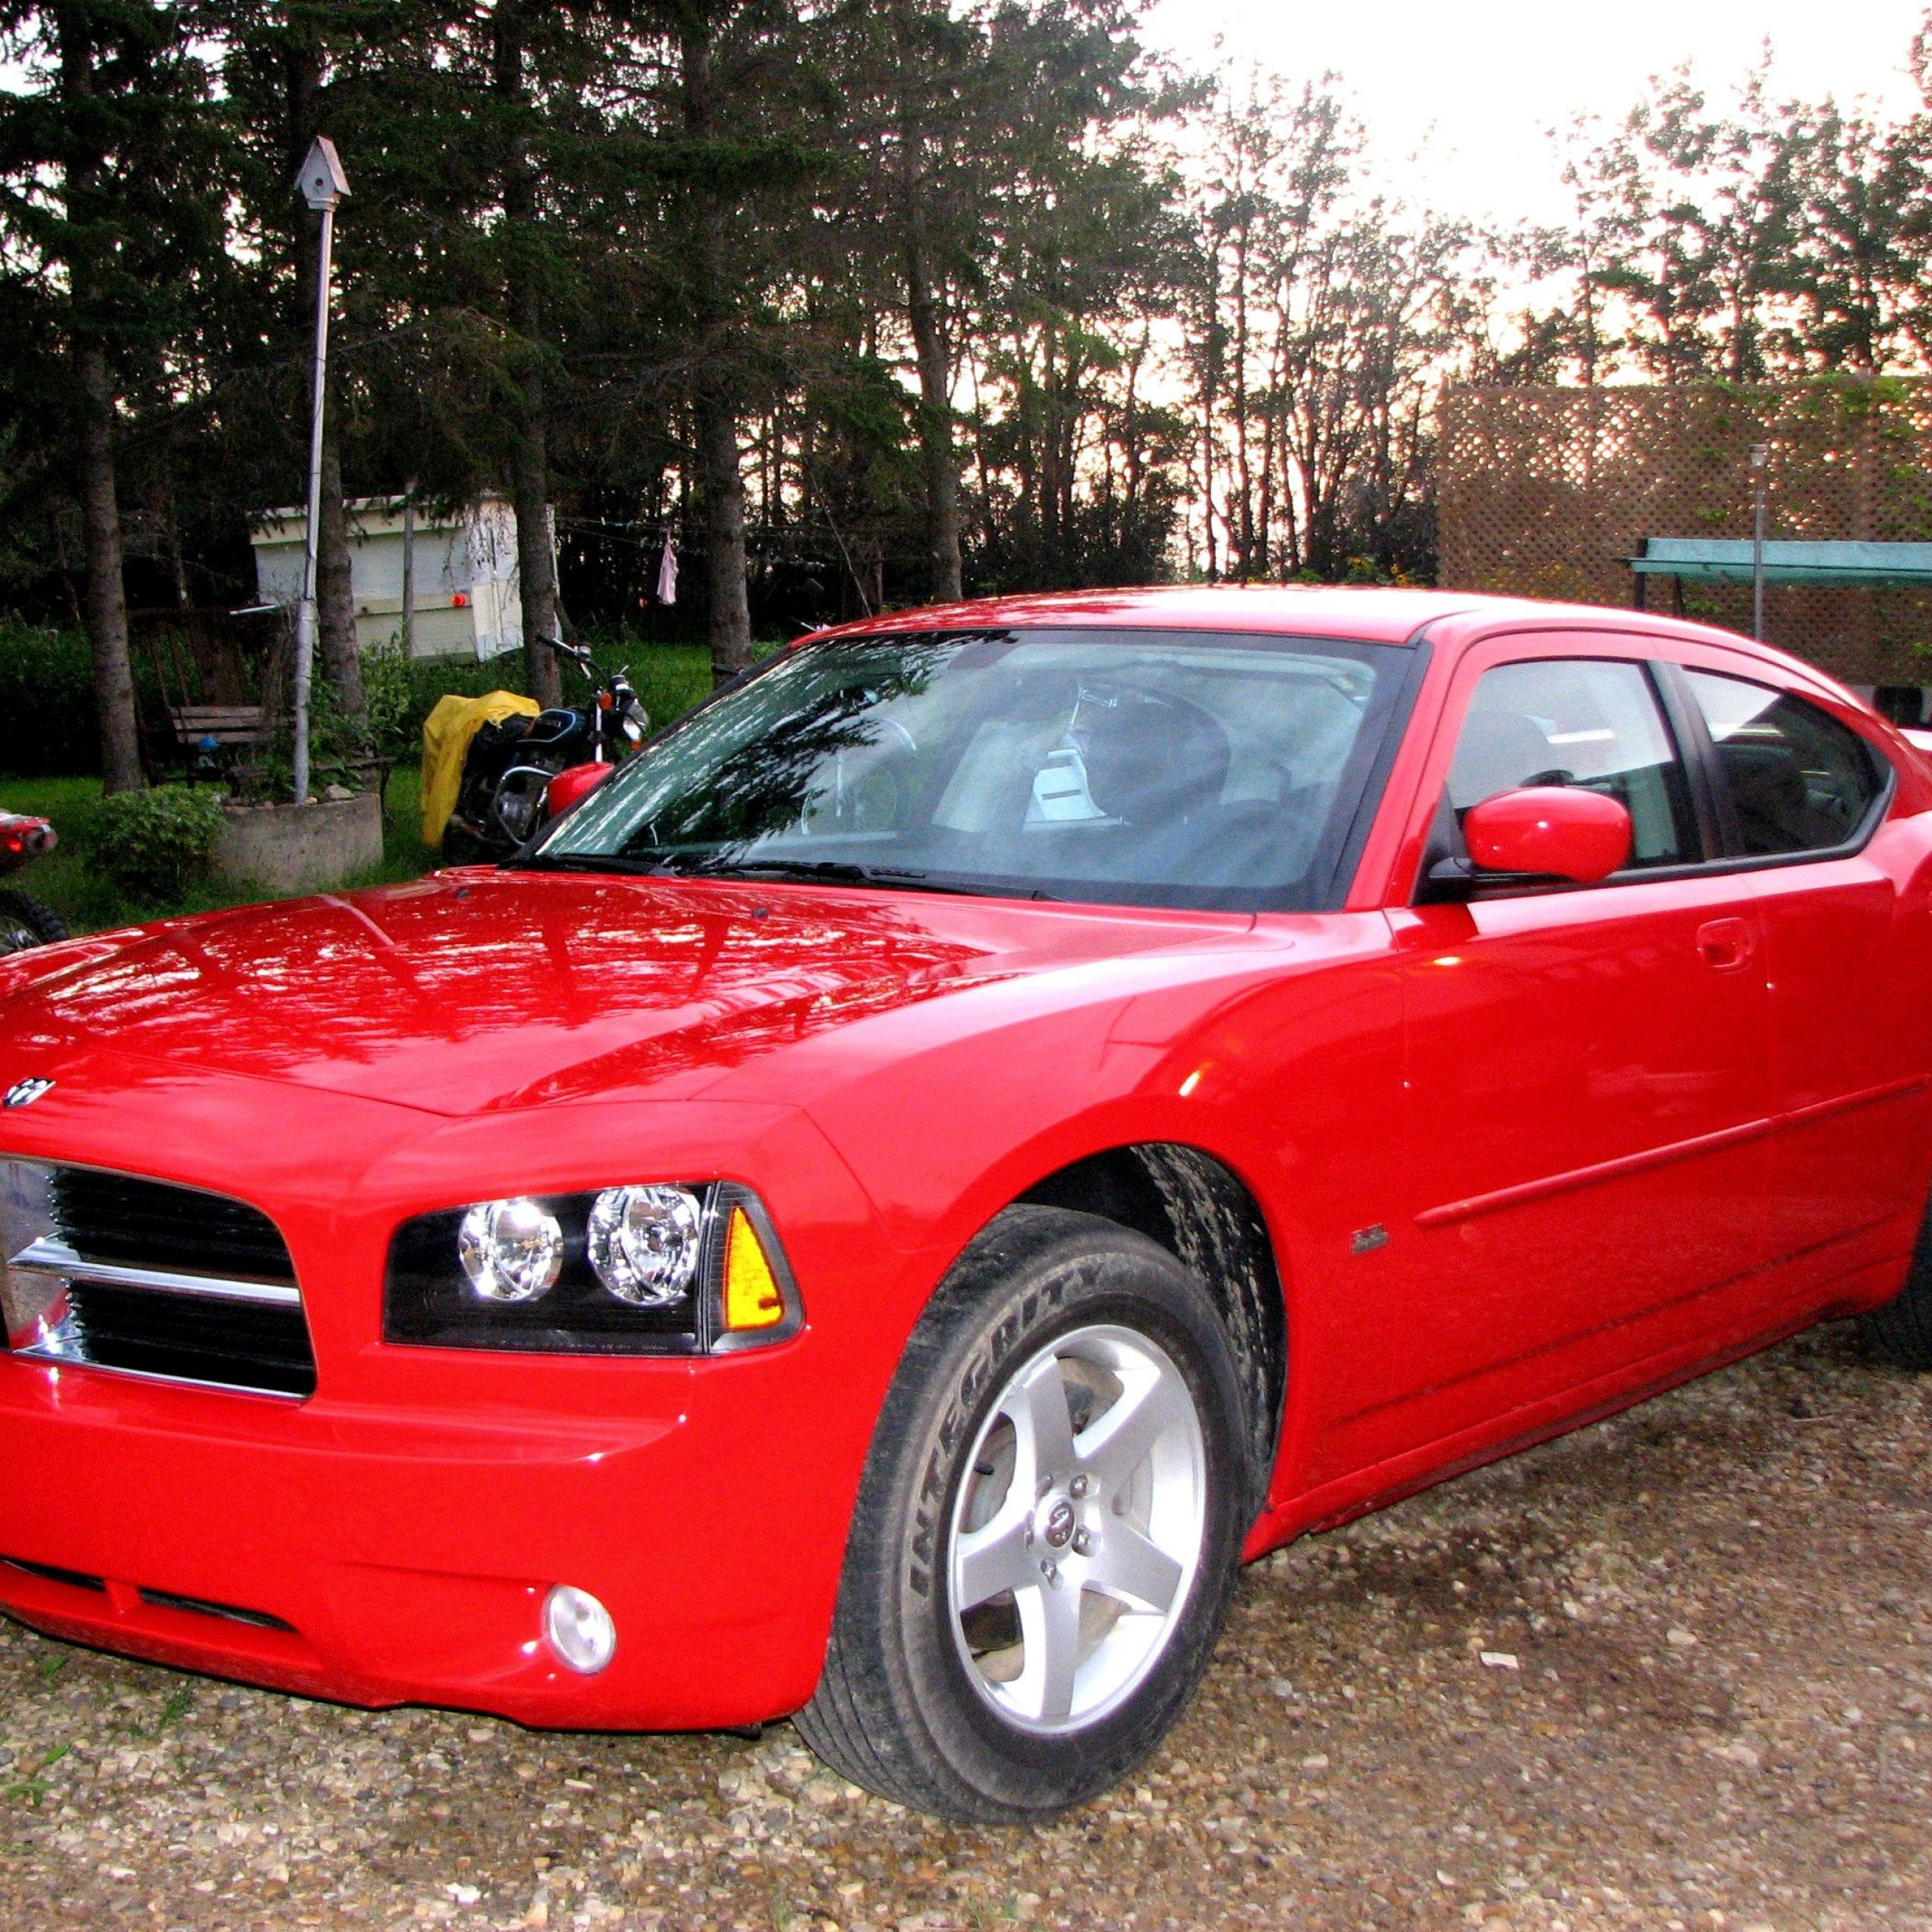 2010 Dodge Avenger New 2010 Dodge Charger Sxt In torred is is A